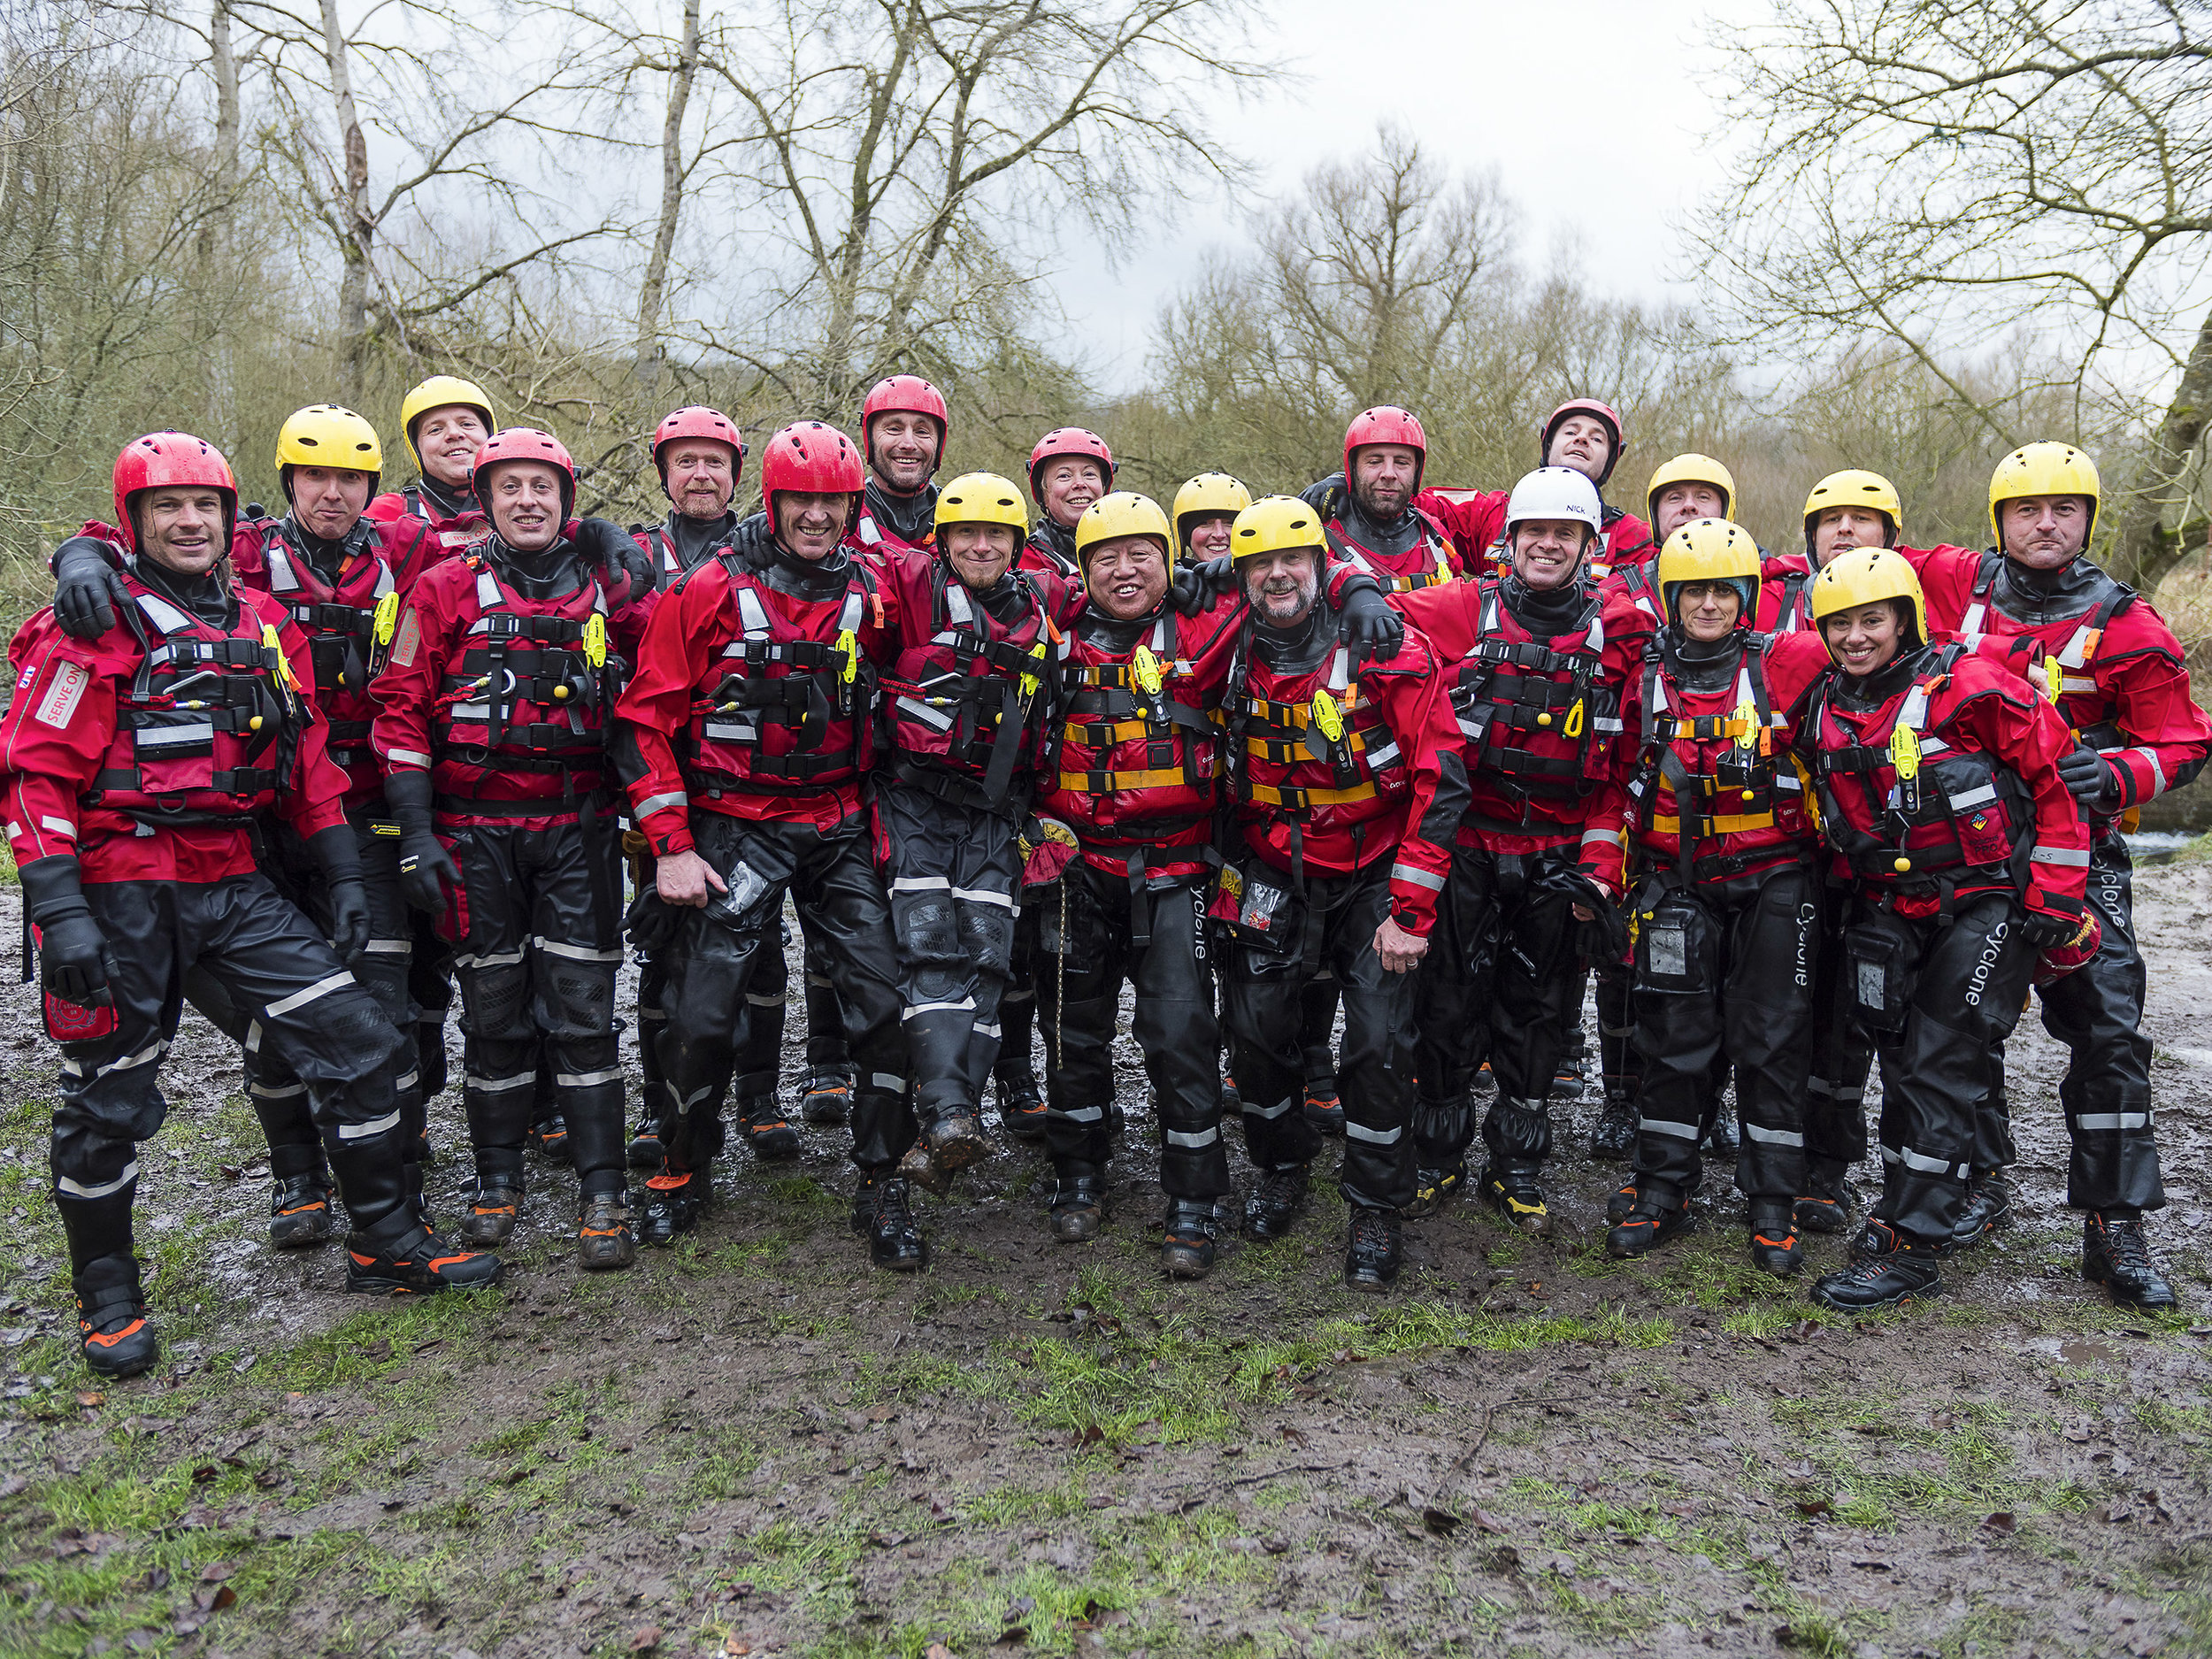 Dionne (bottom right) with other Serve On International Response Team recruits and operational members during swift water awareness training.